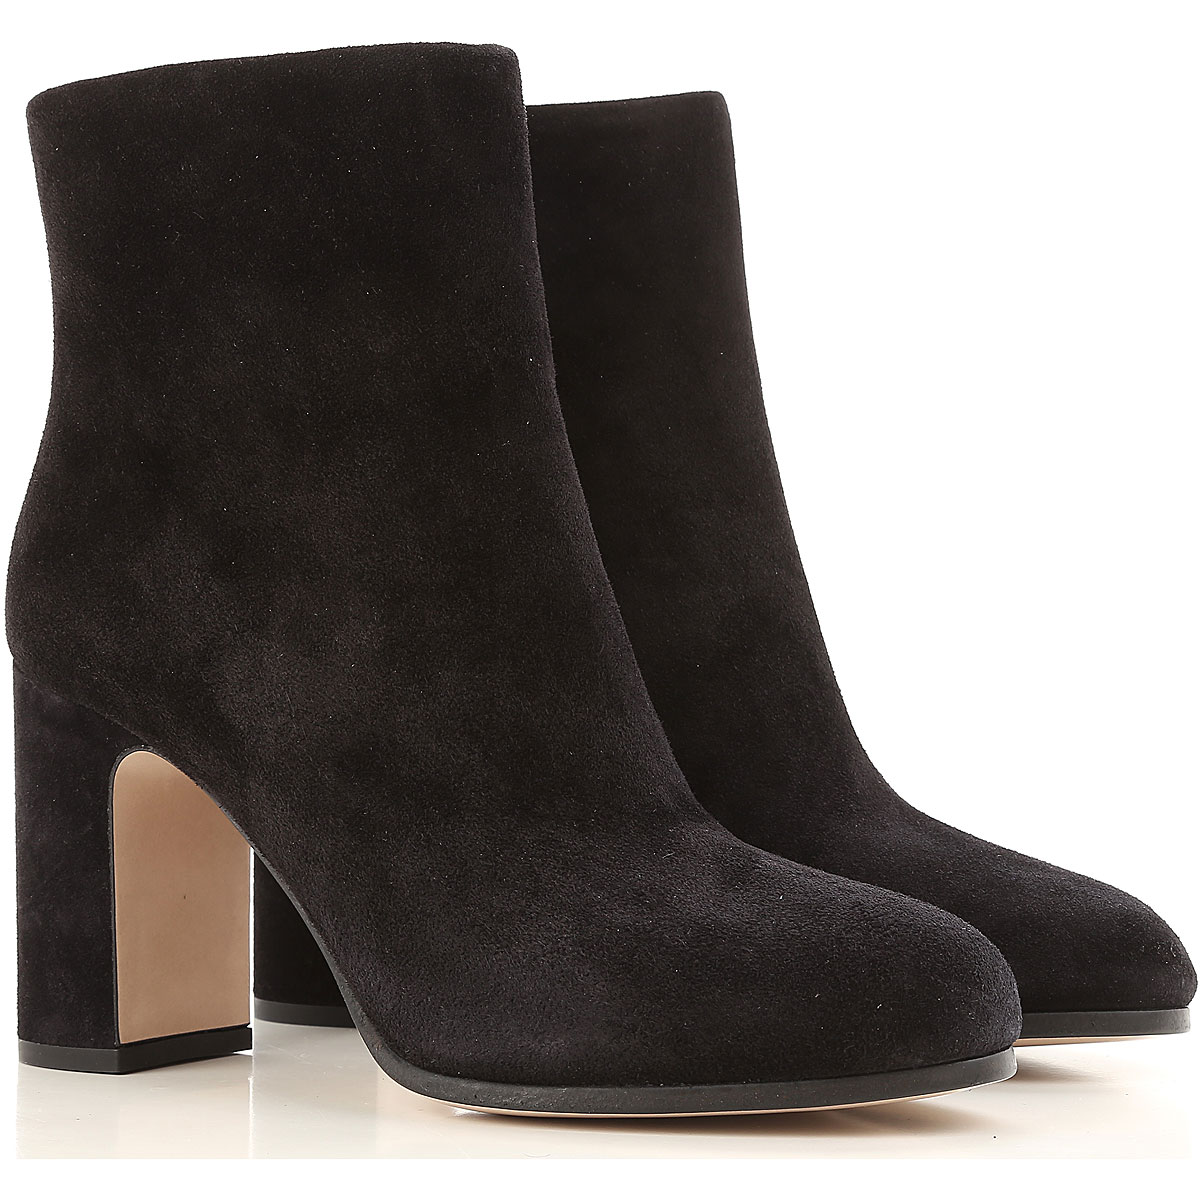 Image of Miu Miu Boots for Women, Booties On Sale in Outlet, Black, Eco Suede leather, 2017, 5 7.5